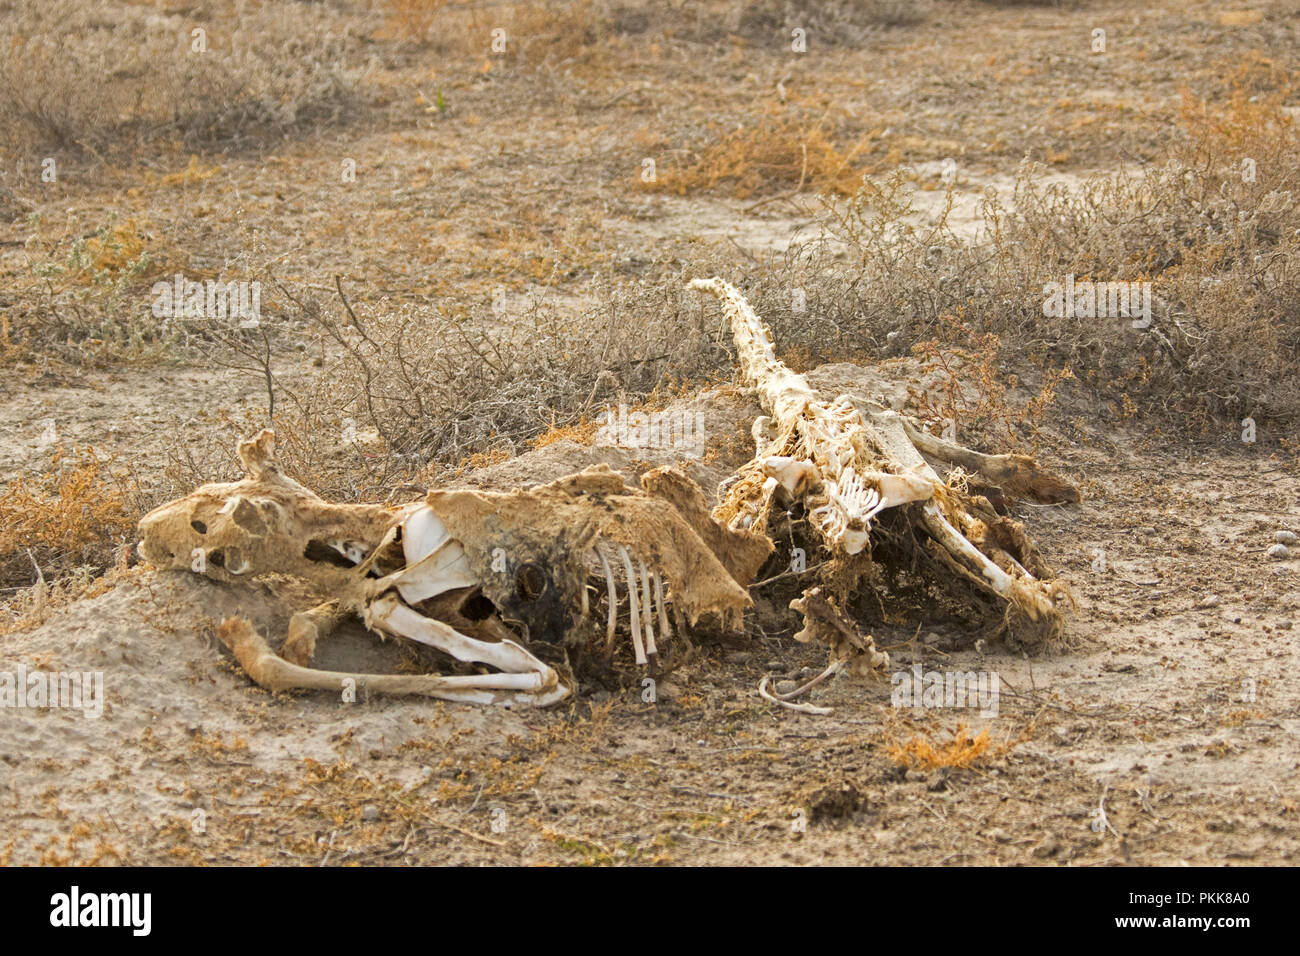 Skeleton and fragments of skin and fur of dead red kangaroo that was a victim of naturaal disaster / drought in outback Australia - Stock Image